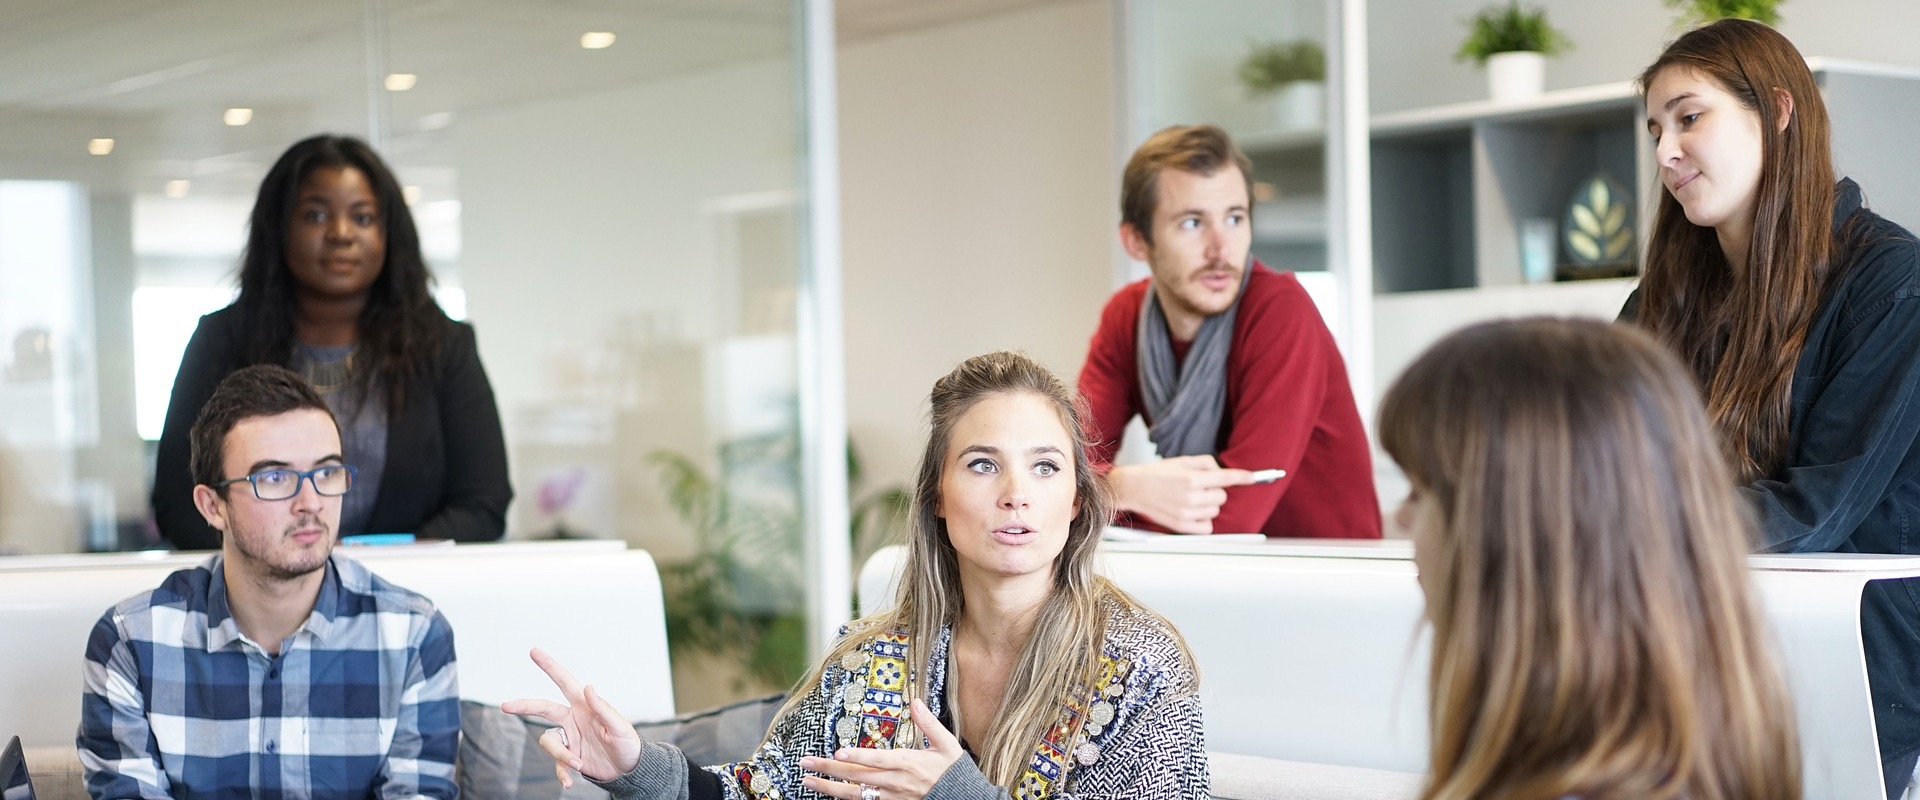 Voluntary Benefits Boost Employee Engagement - If You Communicate Effectively, Says PeopleValue